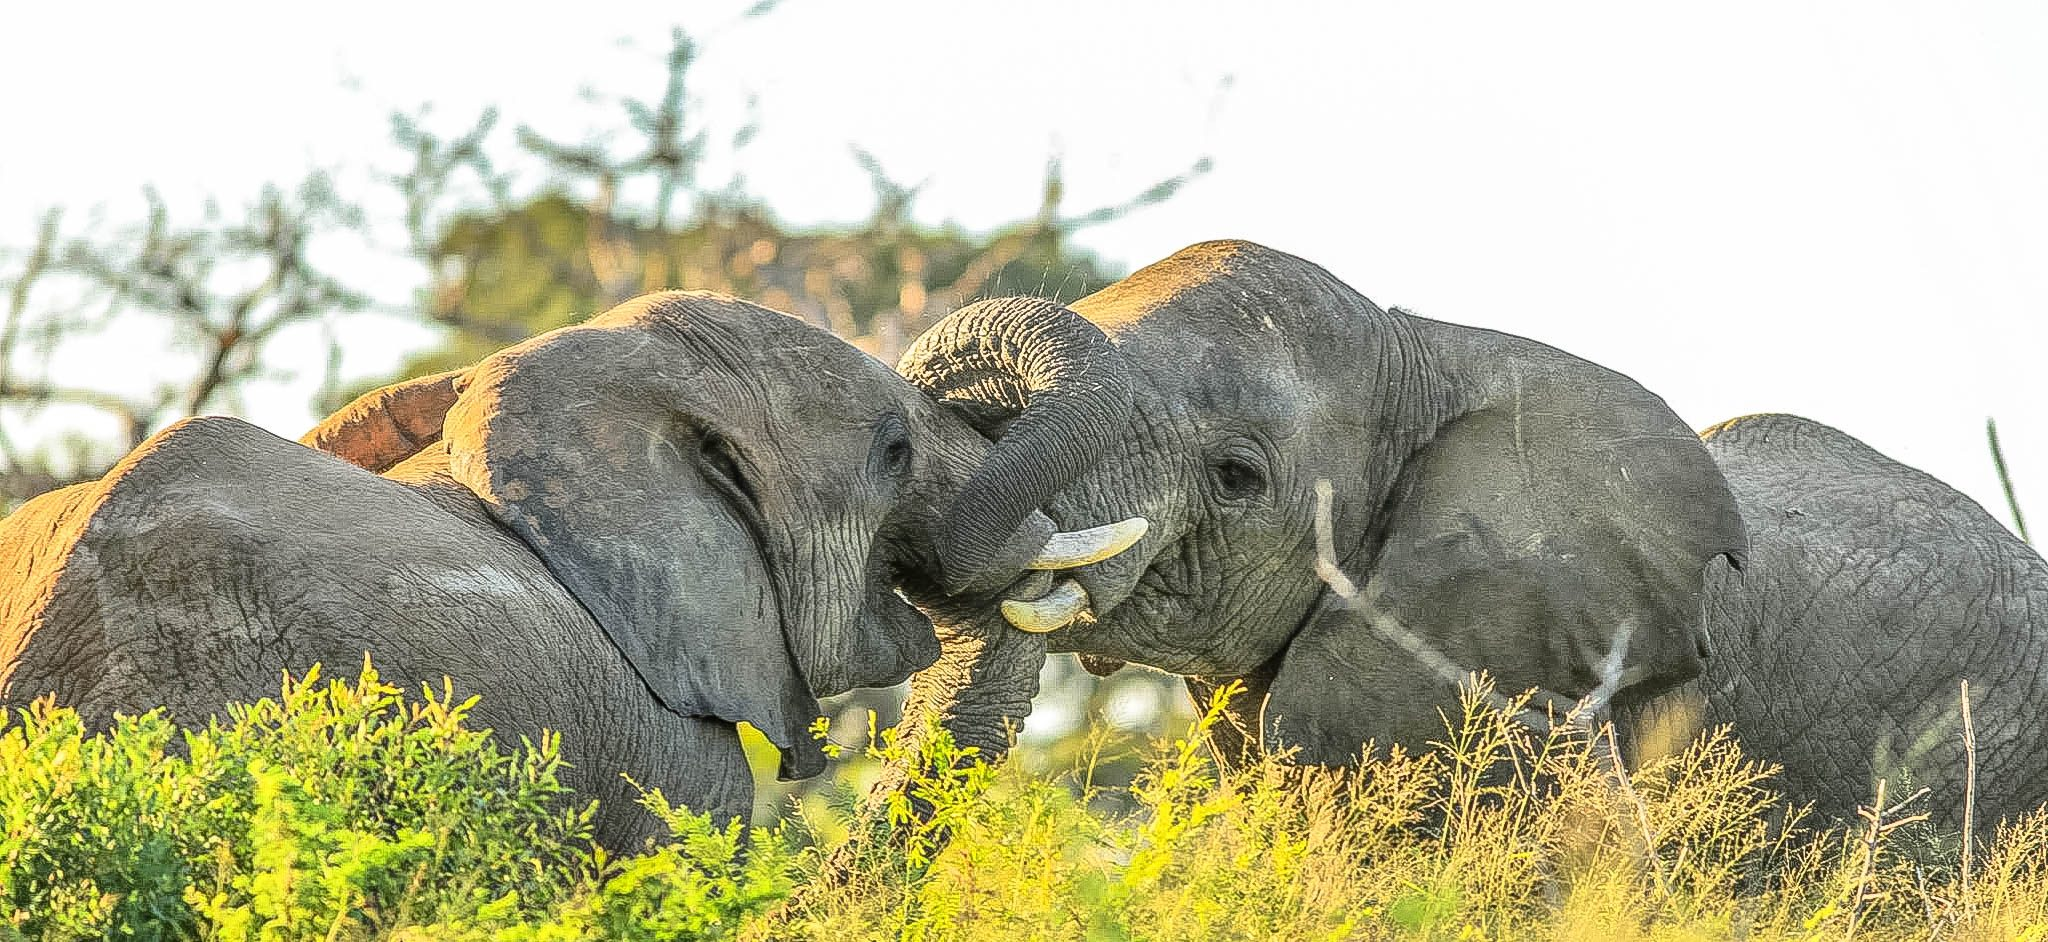 How Elephants use their trunks to eat and drink facts